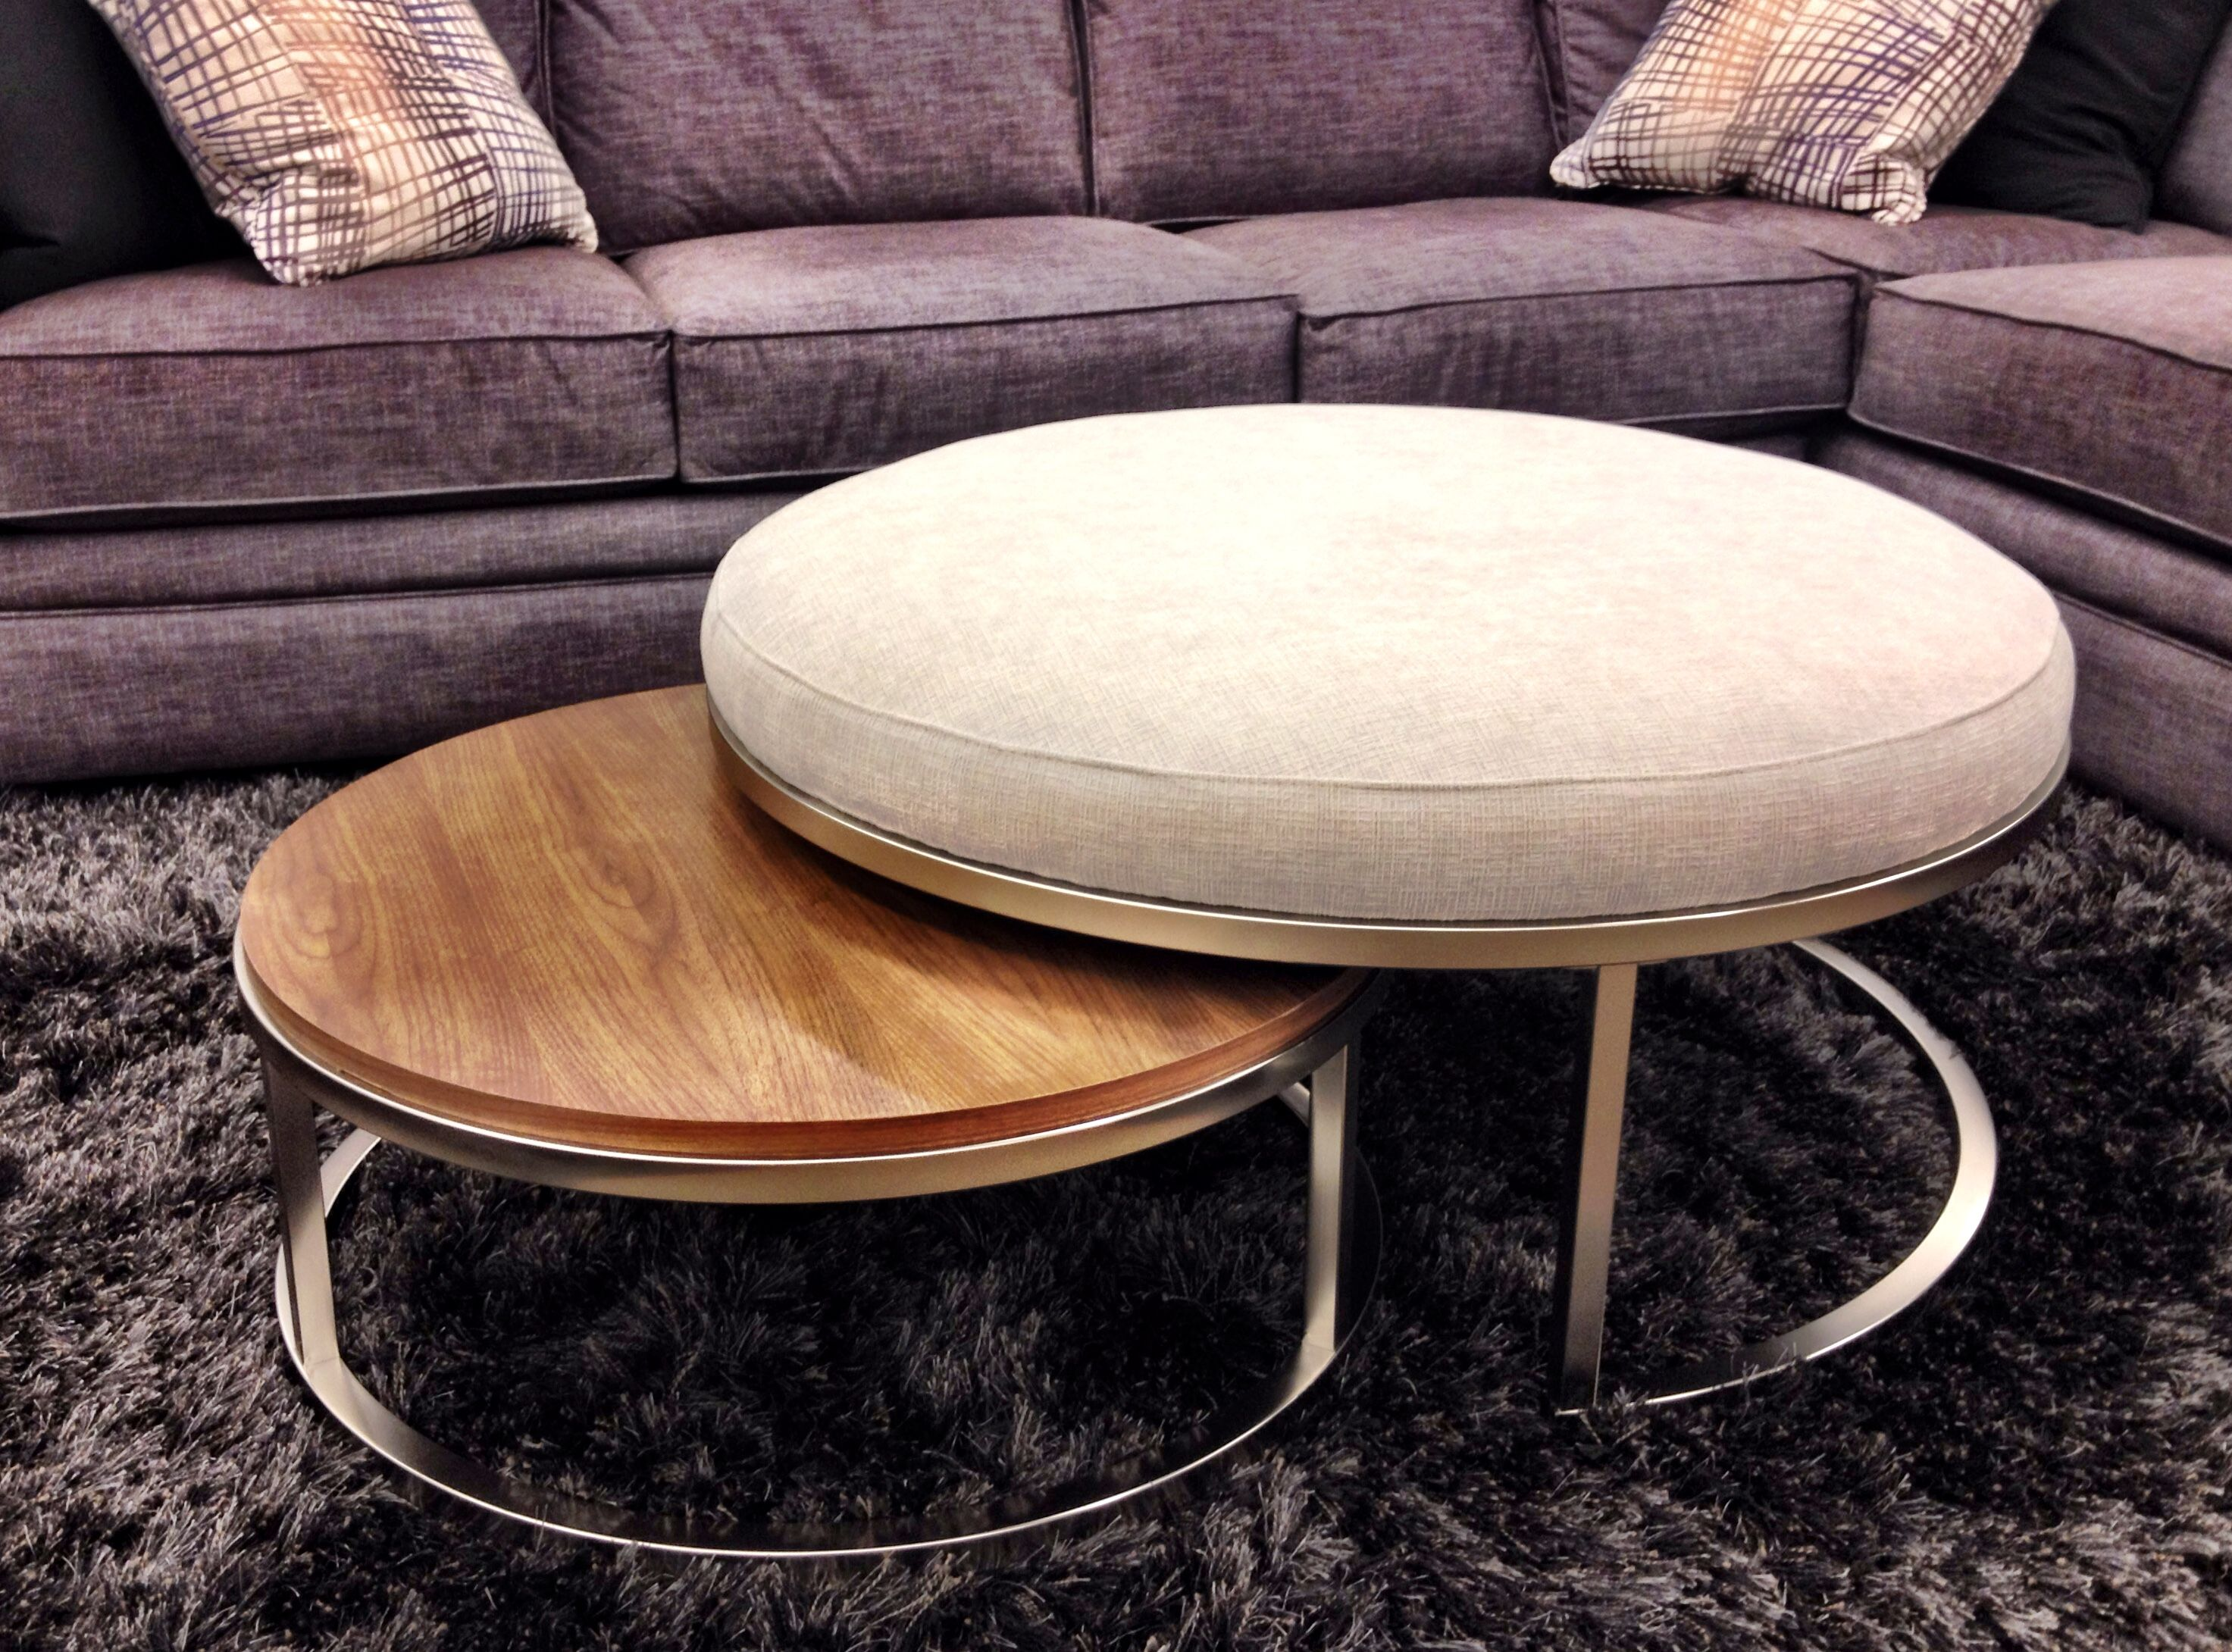 The Best Of Both Worlds Set Of 2 Nesting Coffee Table Ottoman Available In Over 300 Fabrics Ottoman Coffee Table Nesting Coffee Tables Ottoman [ 2180 x 2945 Pixel ]